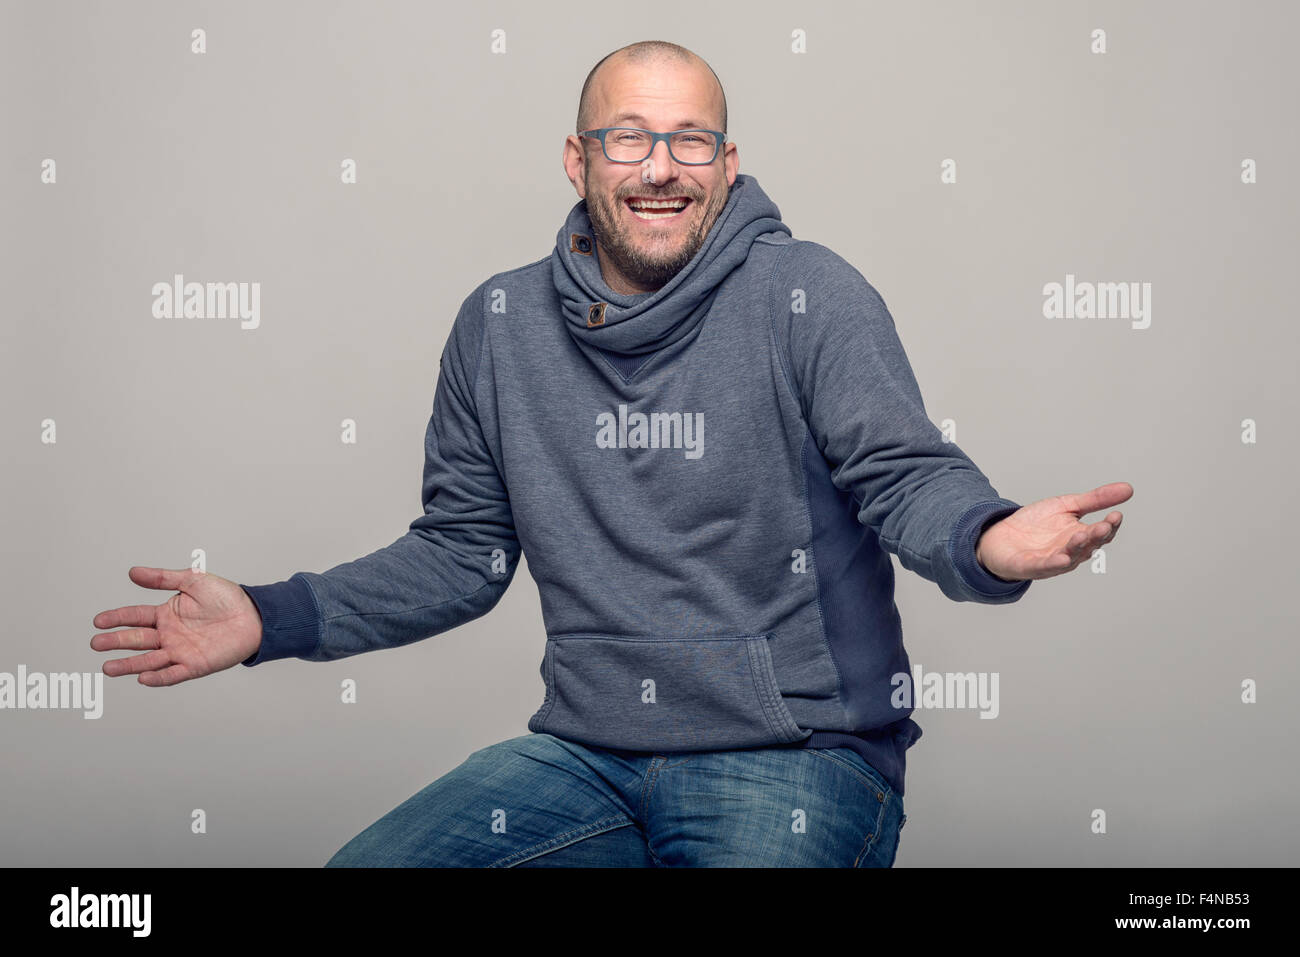 Charismatic balding middle-aged man wearing glasses laughing and shrugging his shoulders to show his ignorance, - Stock Image